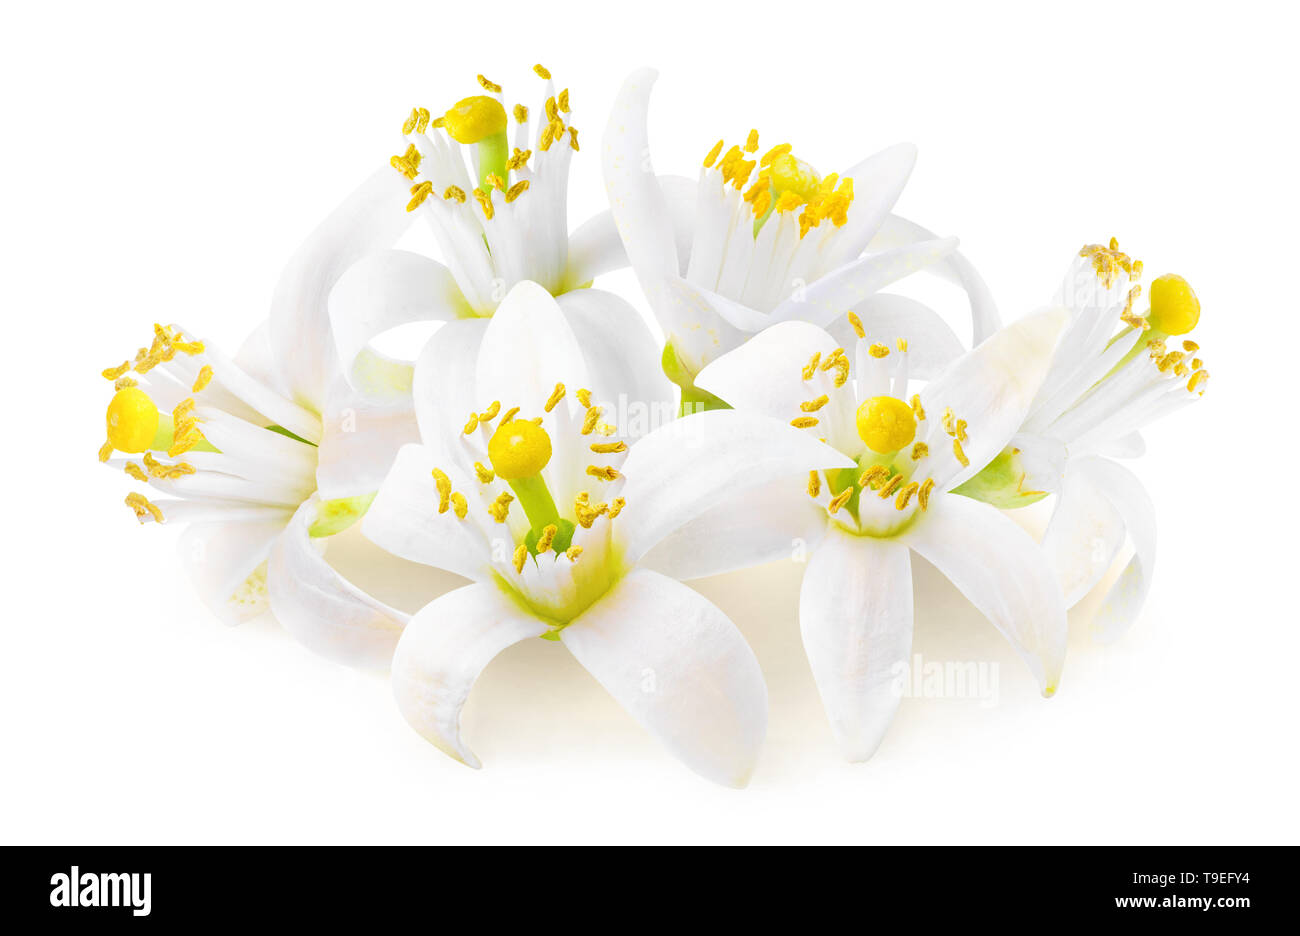 Isolated citrus tree flowers. Fleur d'oranger (orange blossoms) isolated on white background in a pile with clipping path Stock Photo